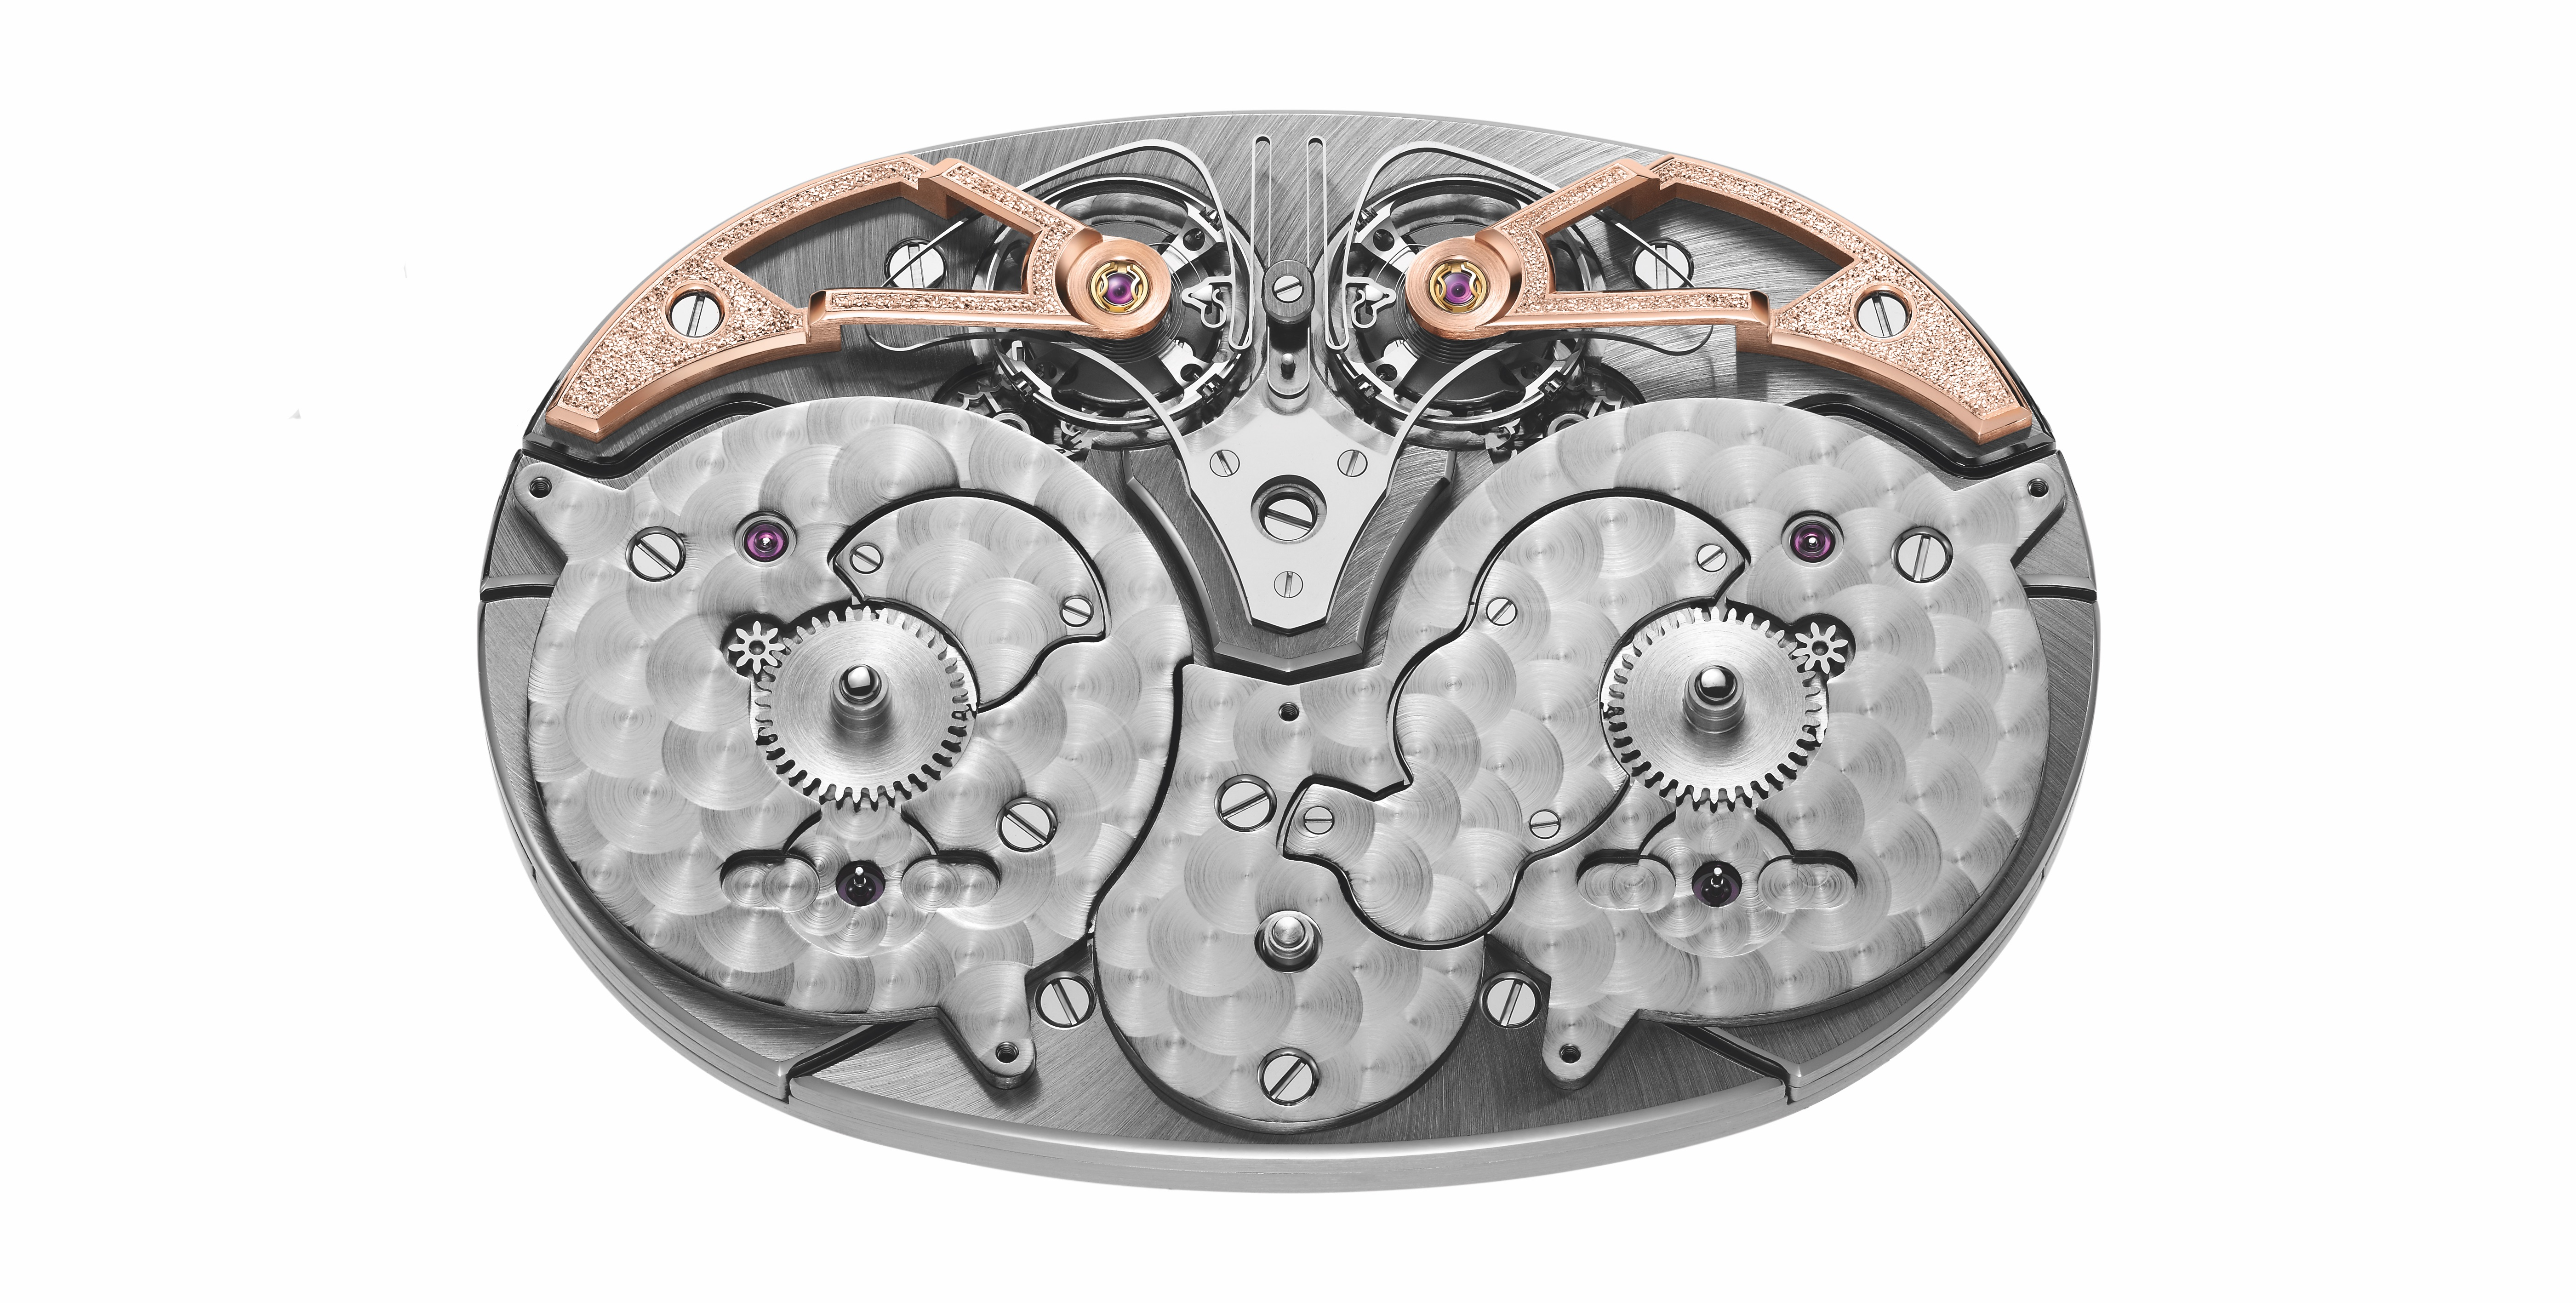 Armin Strom ARF17 movement for the rose gold Dual Time Resonance GMT watch.